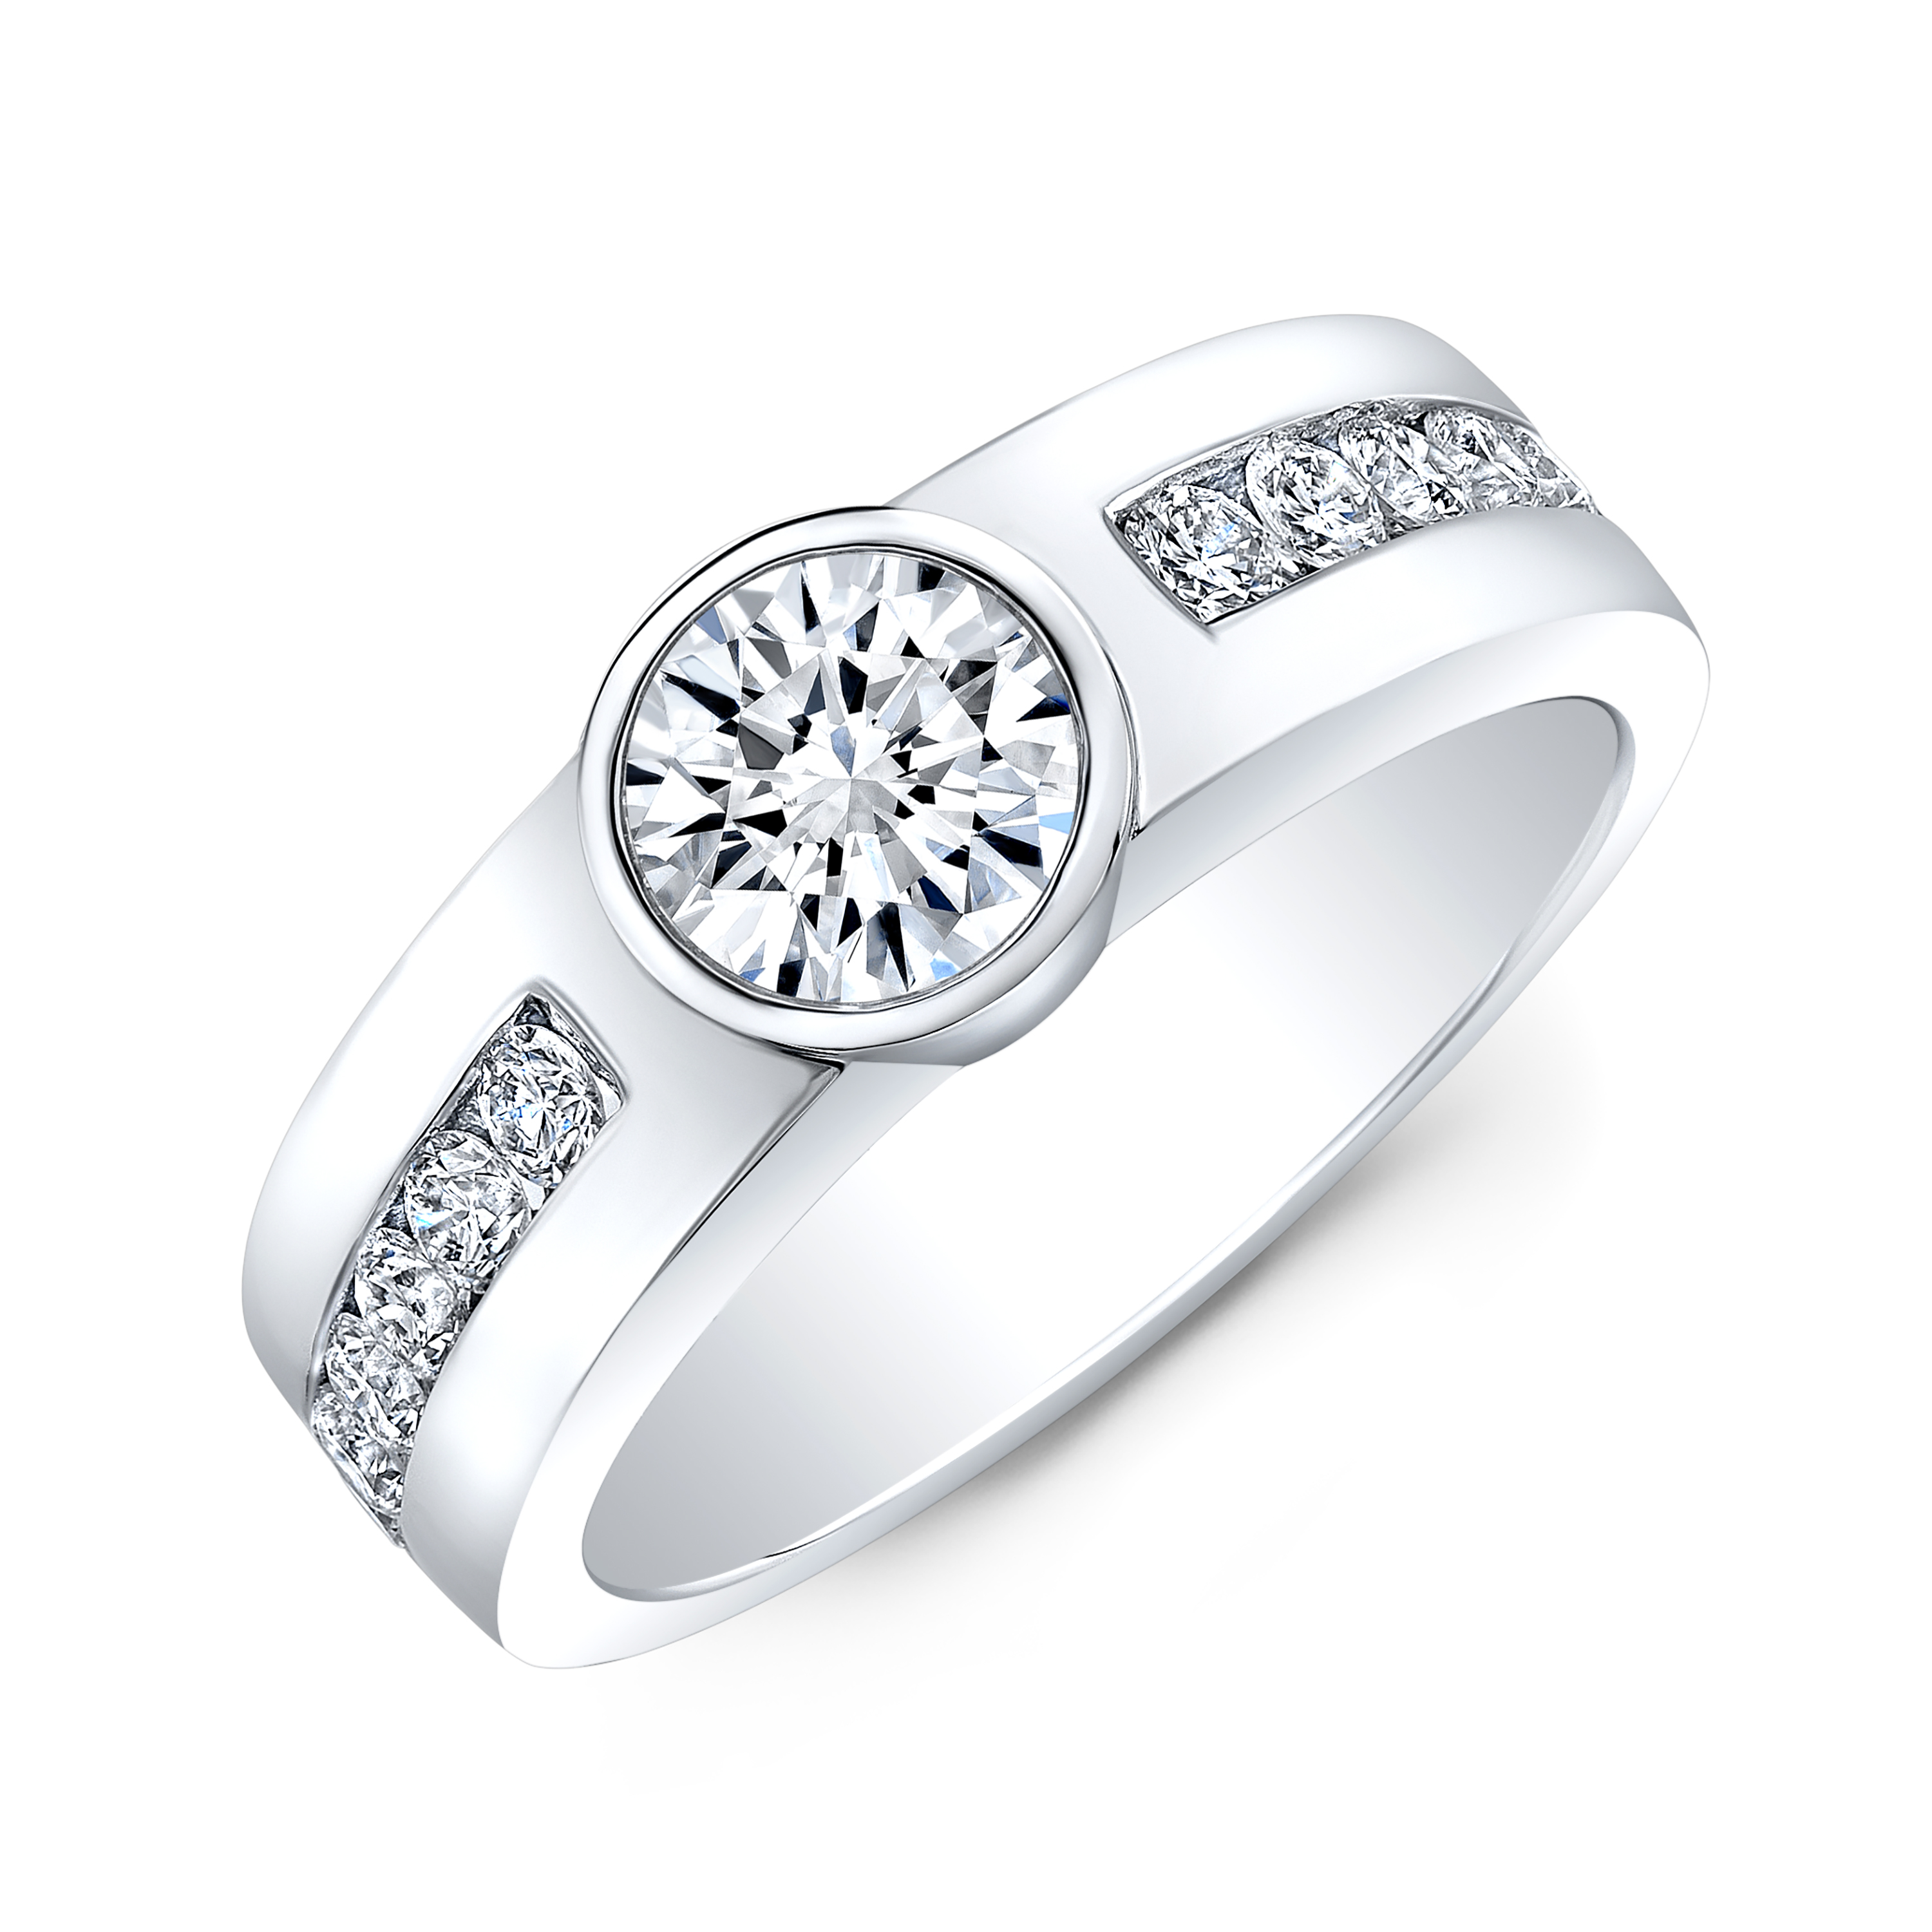 Wide Shank Round Channel Diamond Engagement Ring or Men's Band